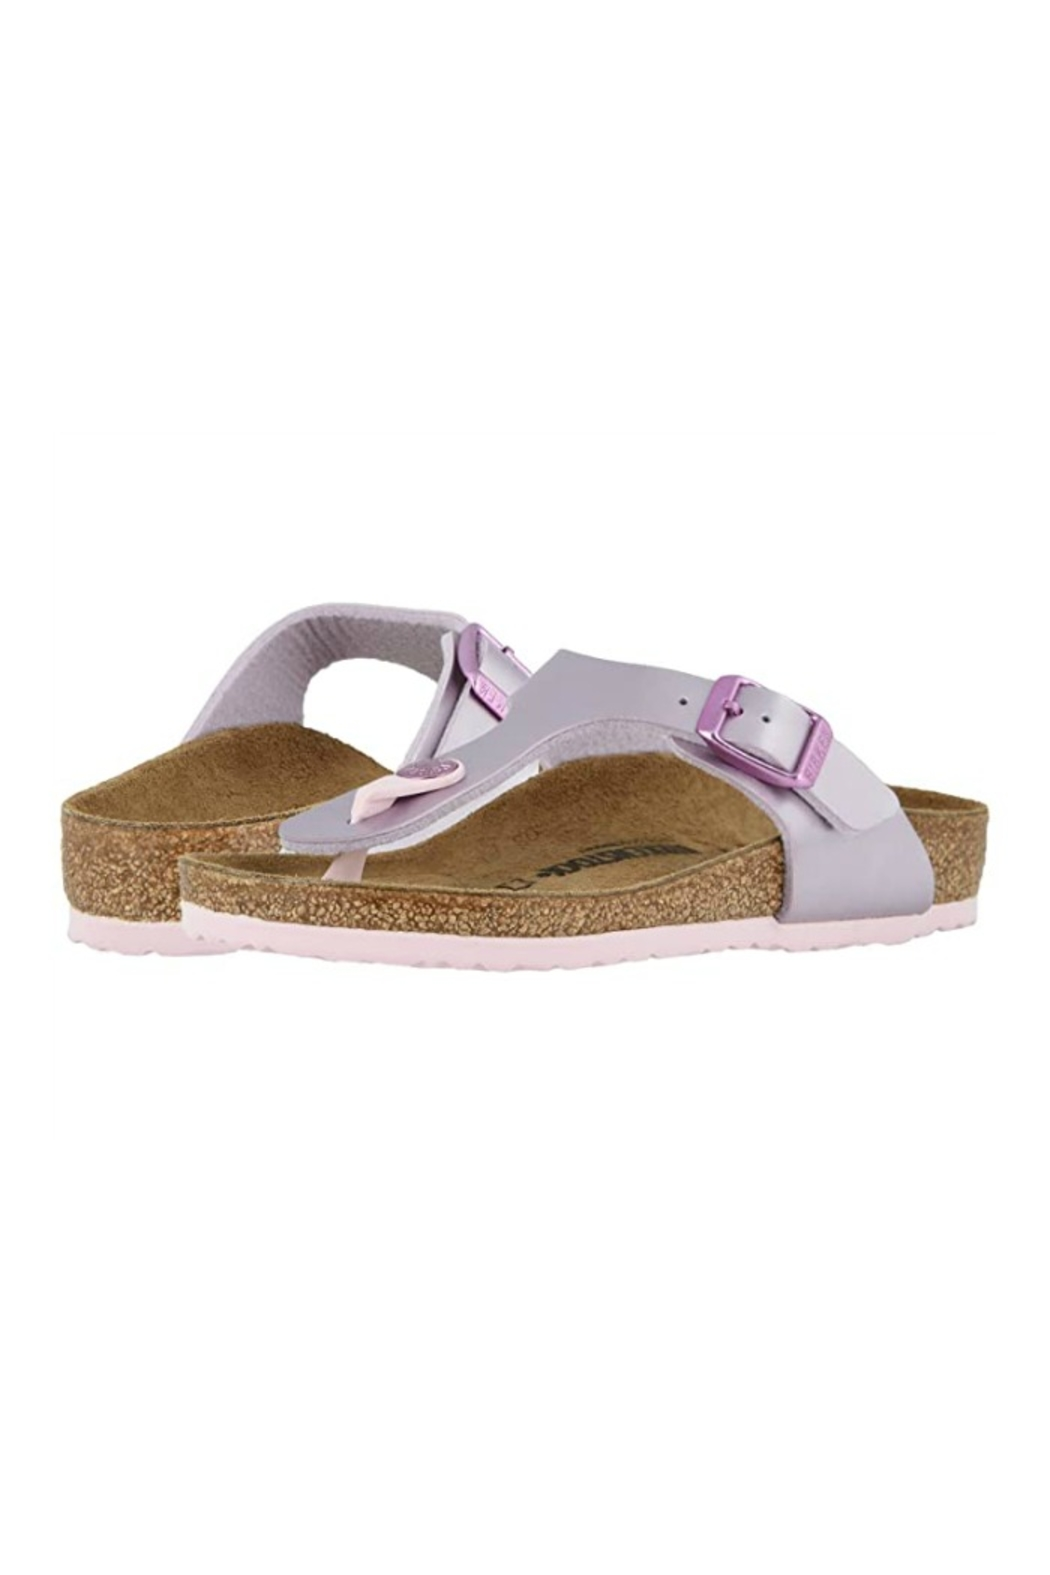 Birkenstock Gizeh Kids in Electric Metallic Lilac - Back Cropped Image